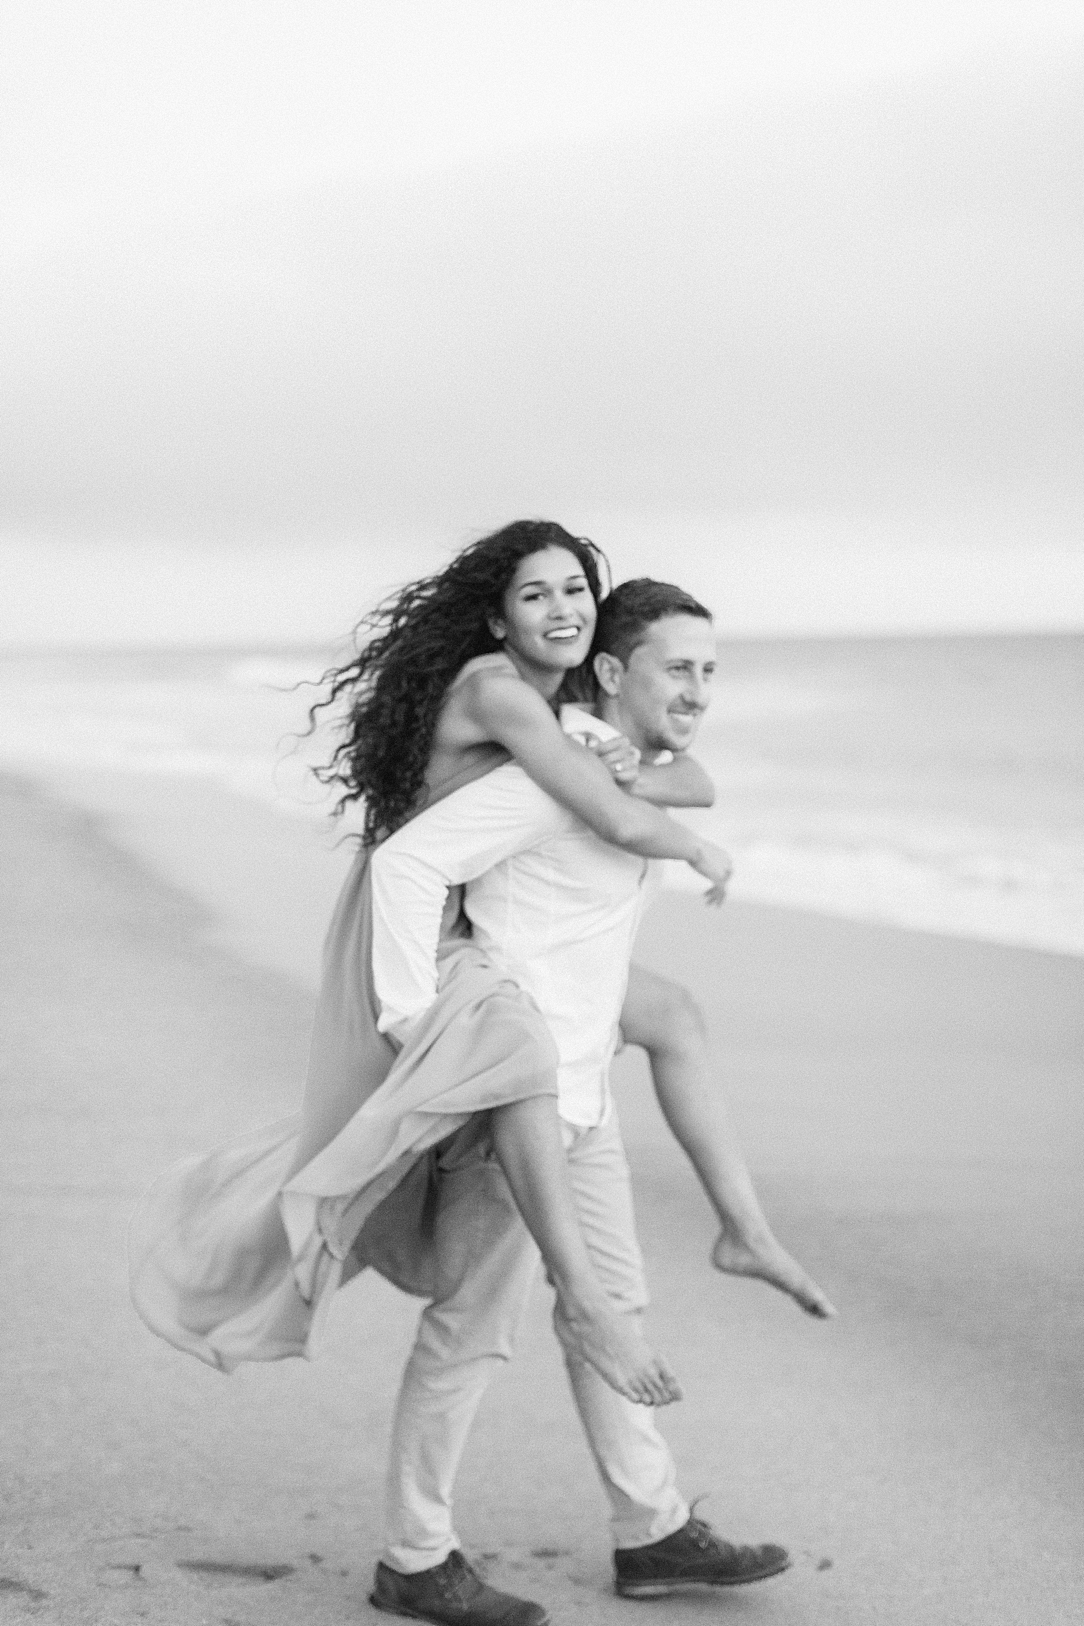 Malibu Cliff Side Engagement Session at Point Dume by Madison Ellis Photography (50)